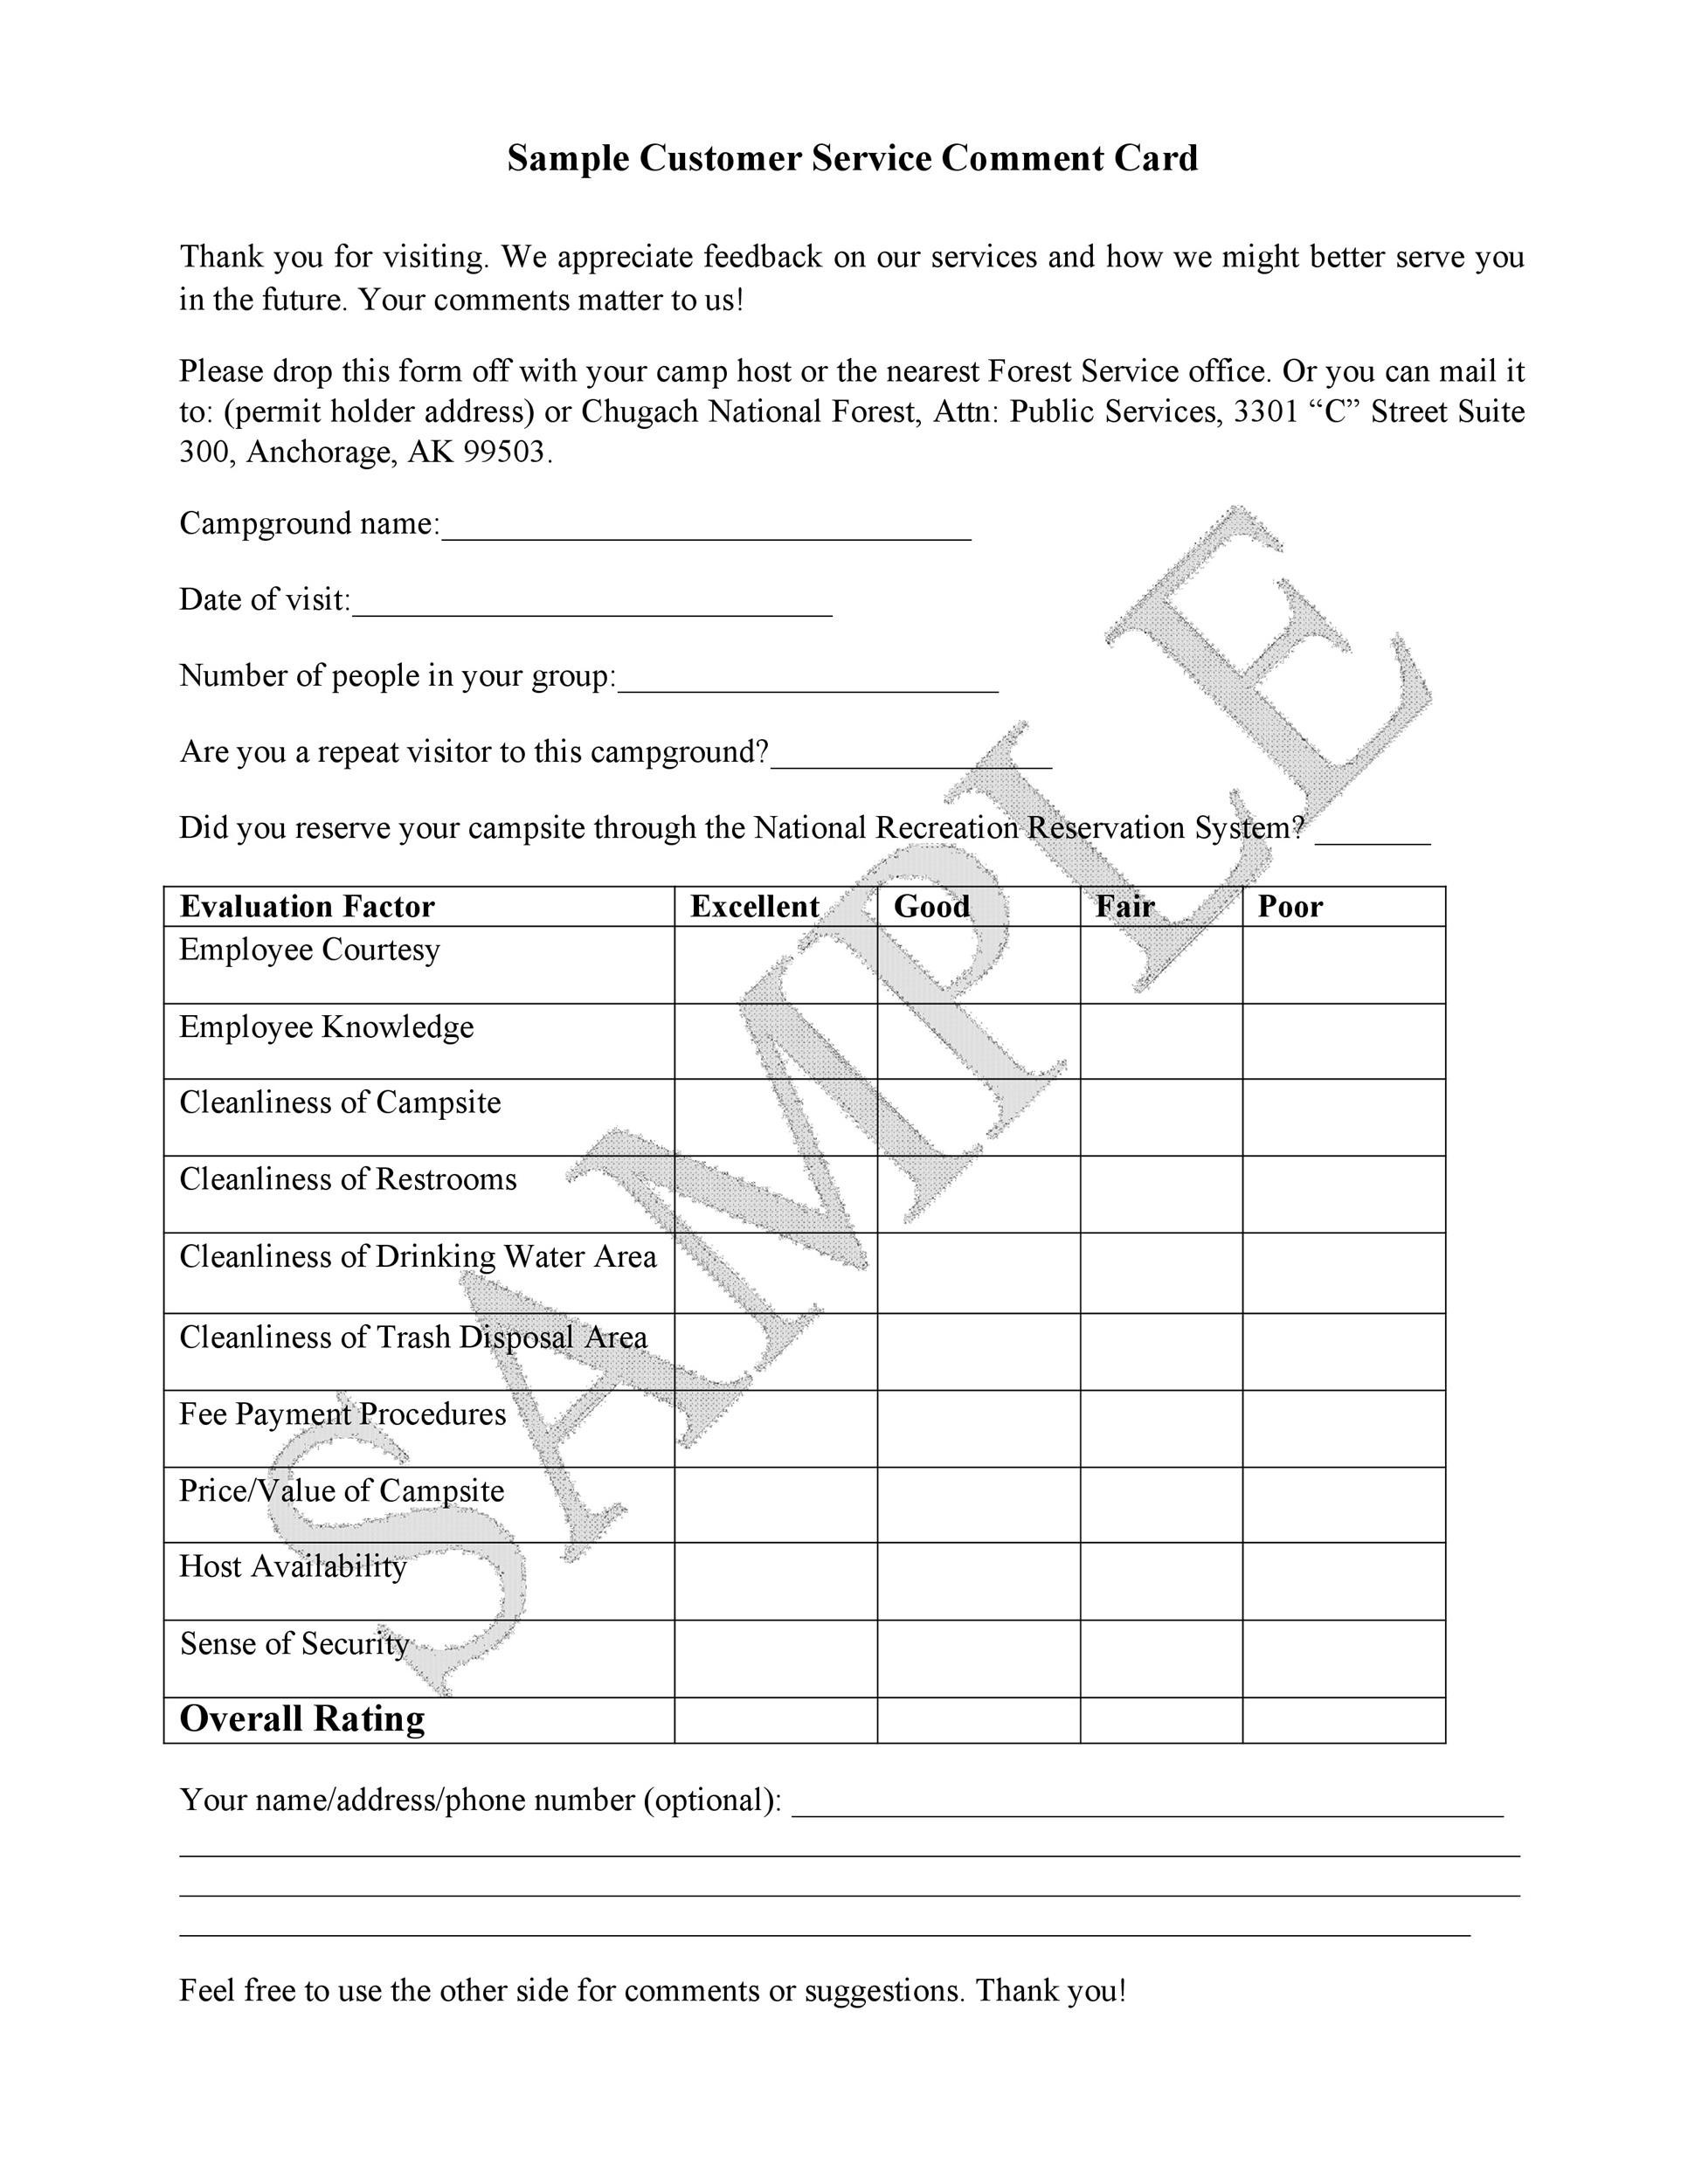 Free comment card template 25